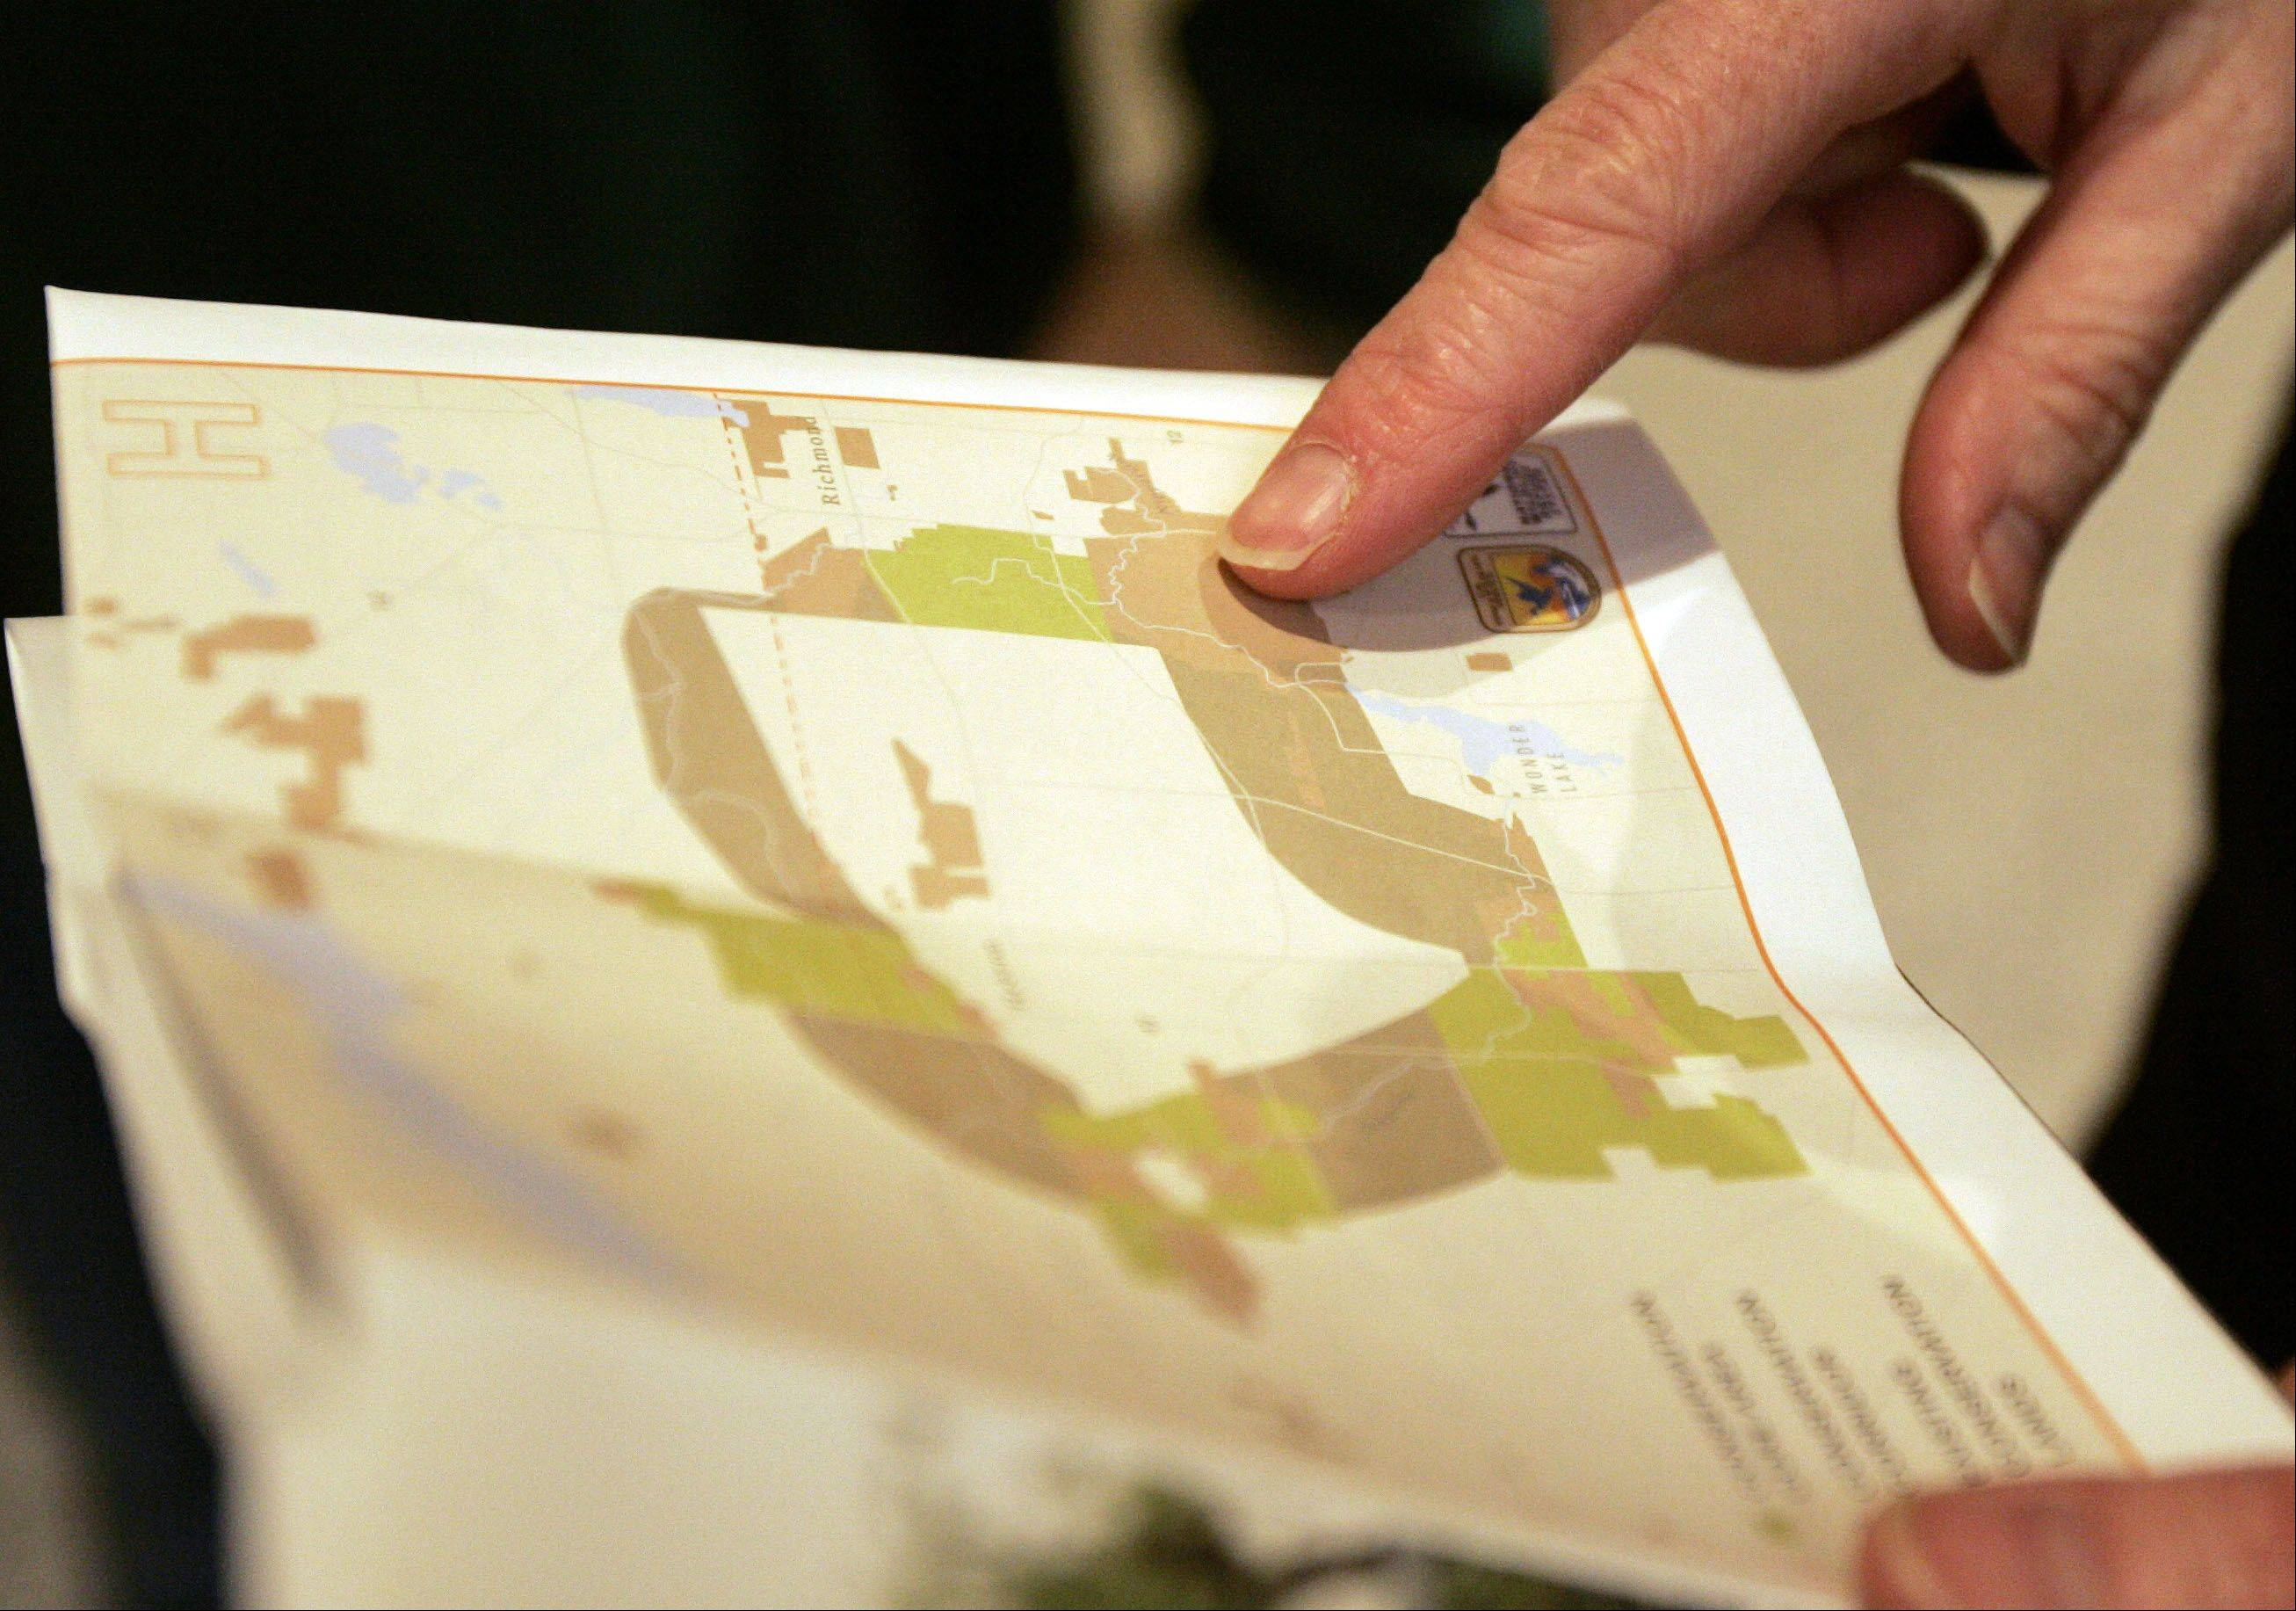 Lenore Beyer-Clow, policy director of Open Lands, looks over one of the maps with the new boundaries during a tour of Glacial Park and Hackmatack National Wildlife Refuge in McHenry County Friday.